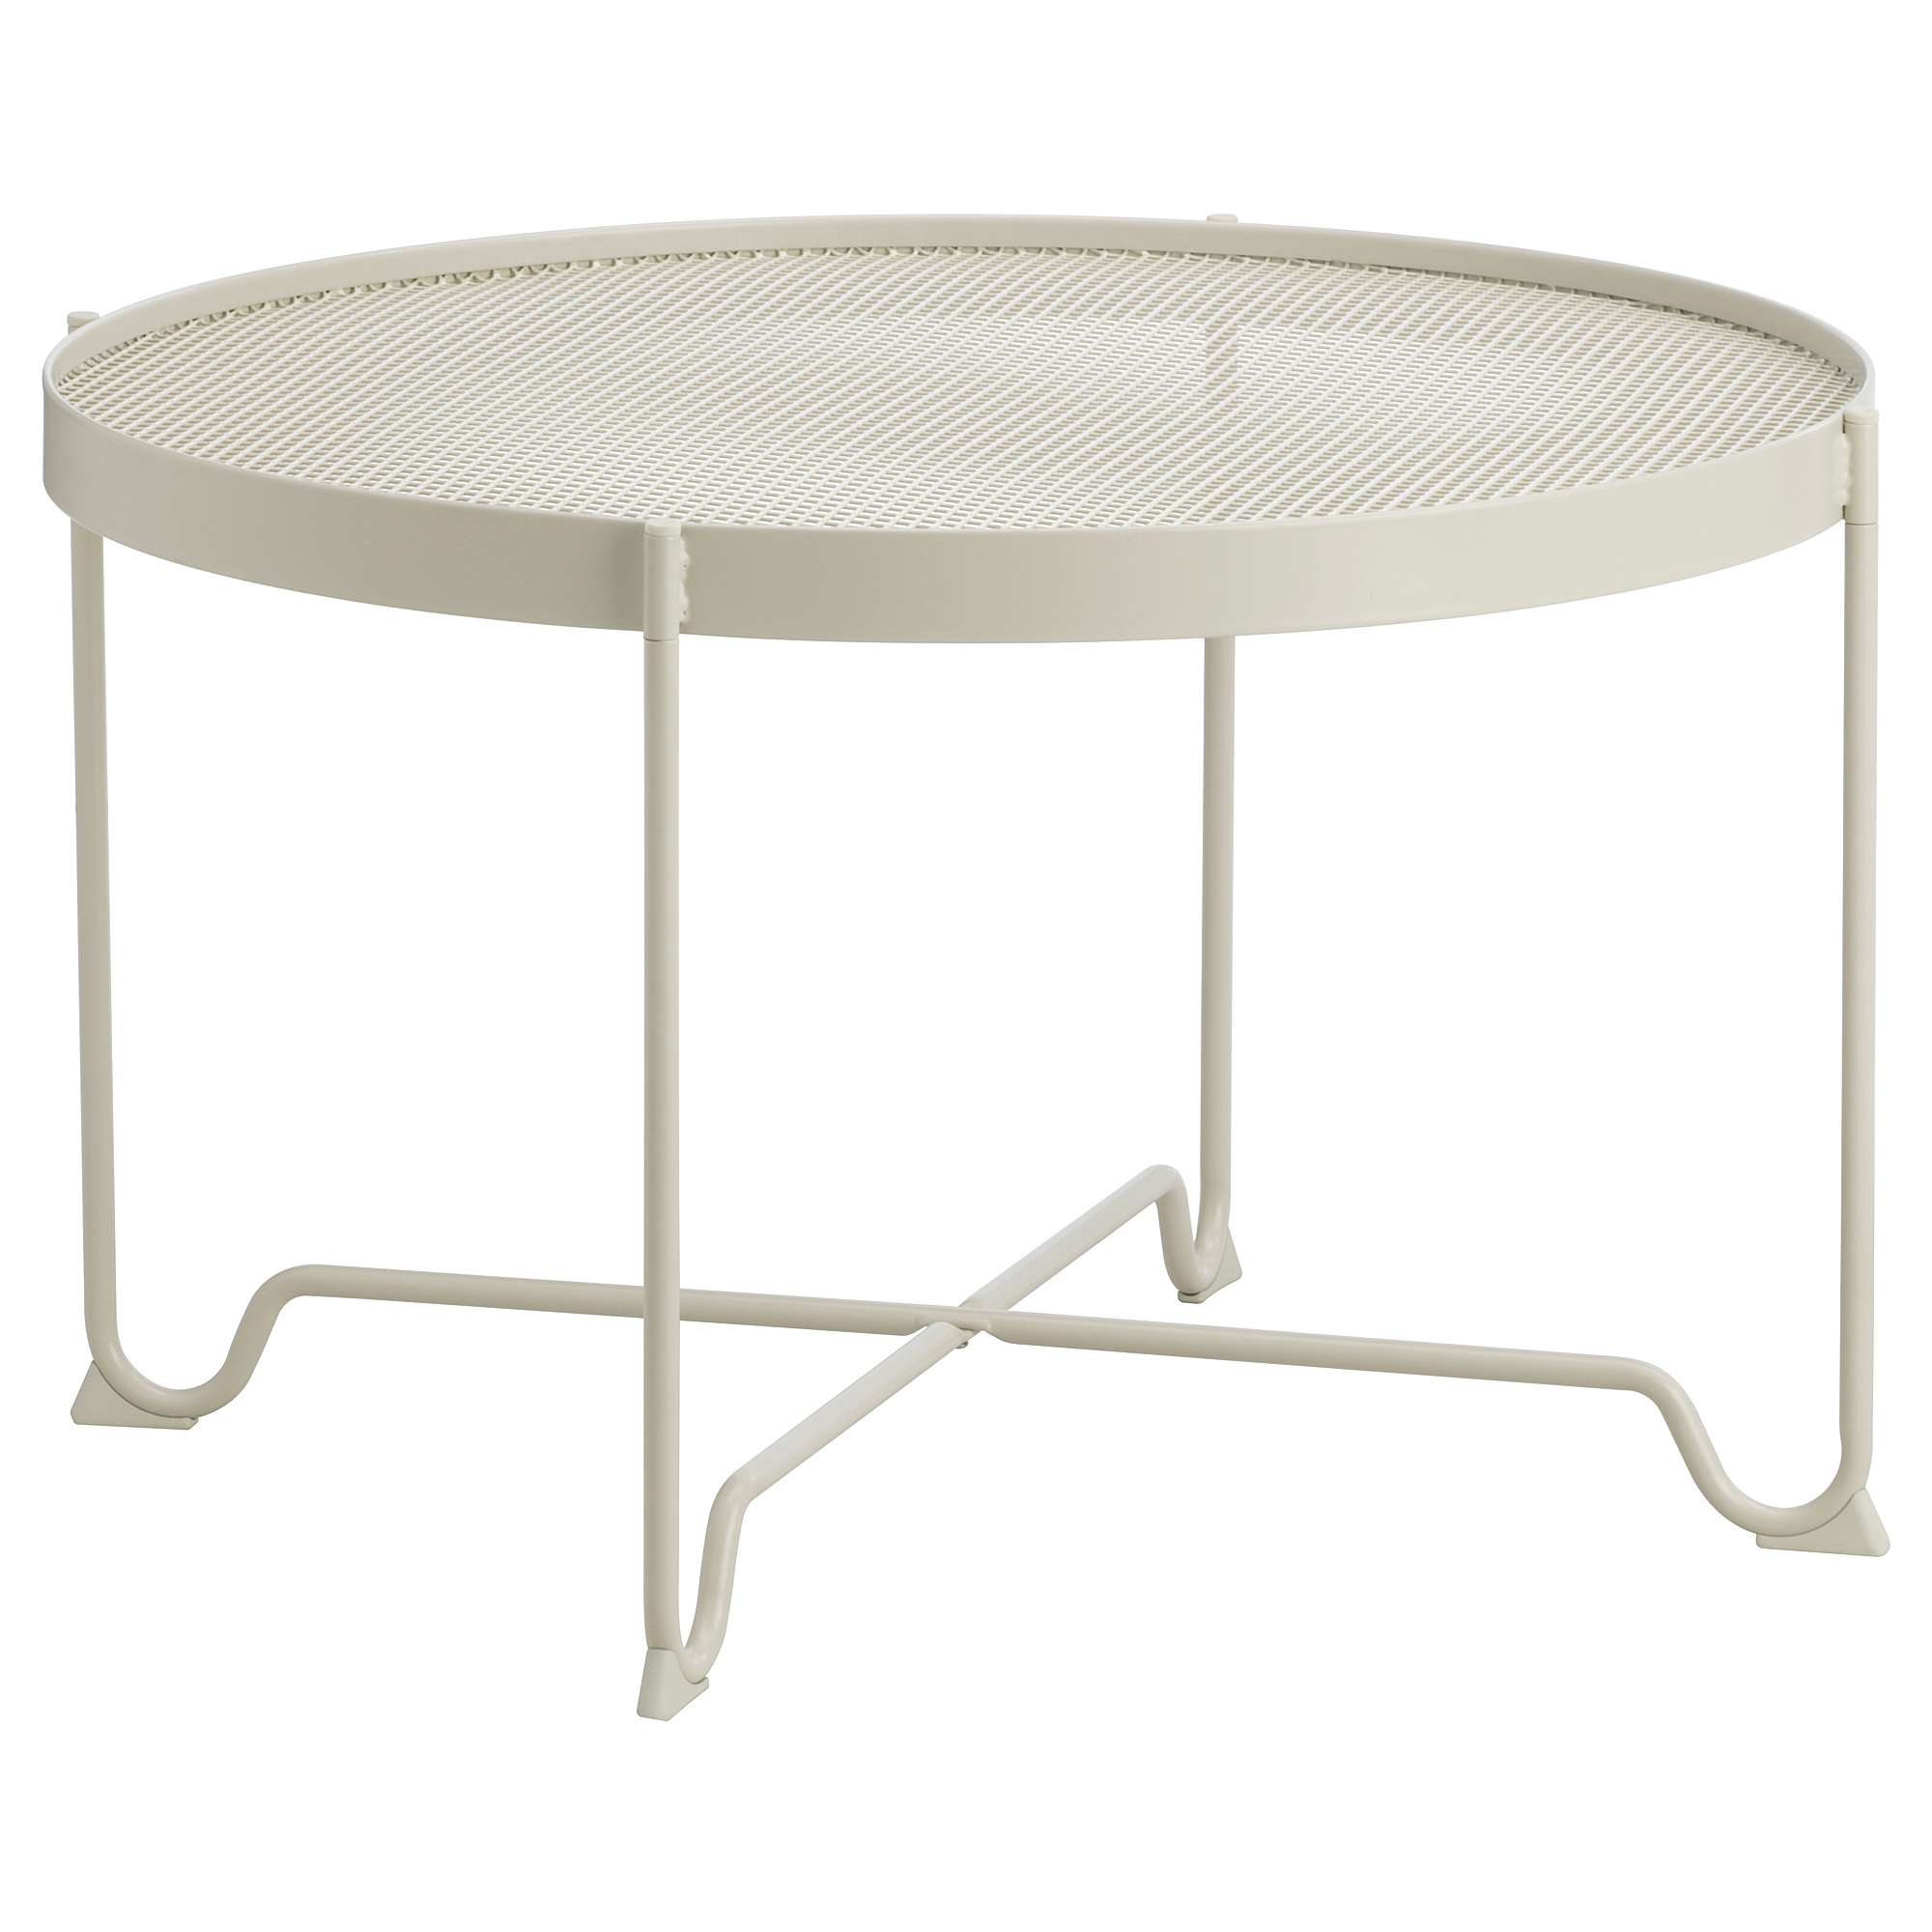 glass top outdoor side table small folding patio end garden and accent metal pillow round entryway matching tables threshold drawer front porch furniture washer dryer black ikea